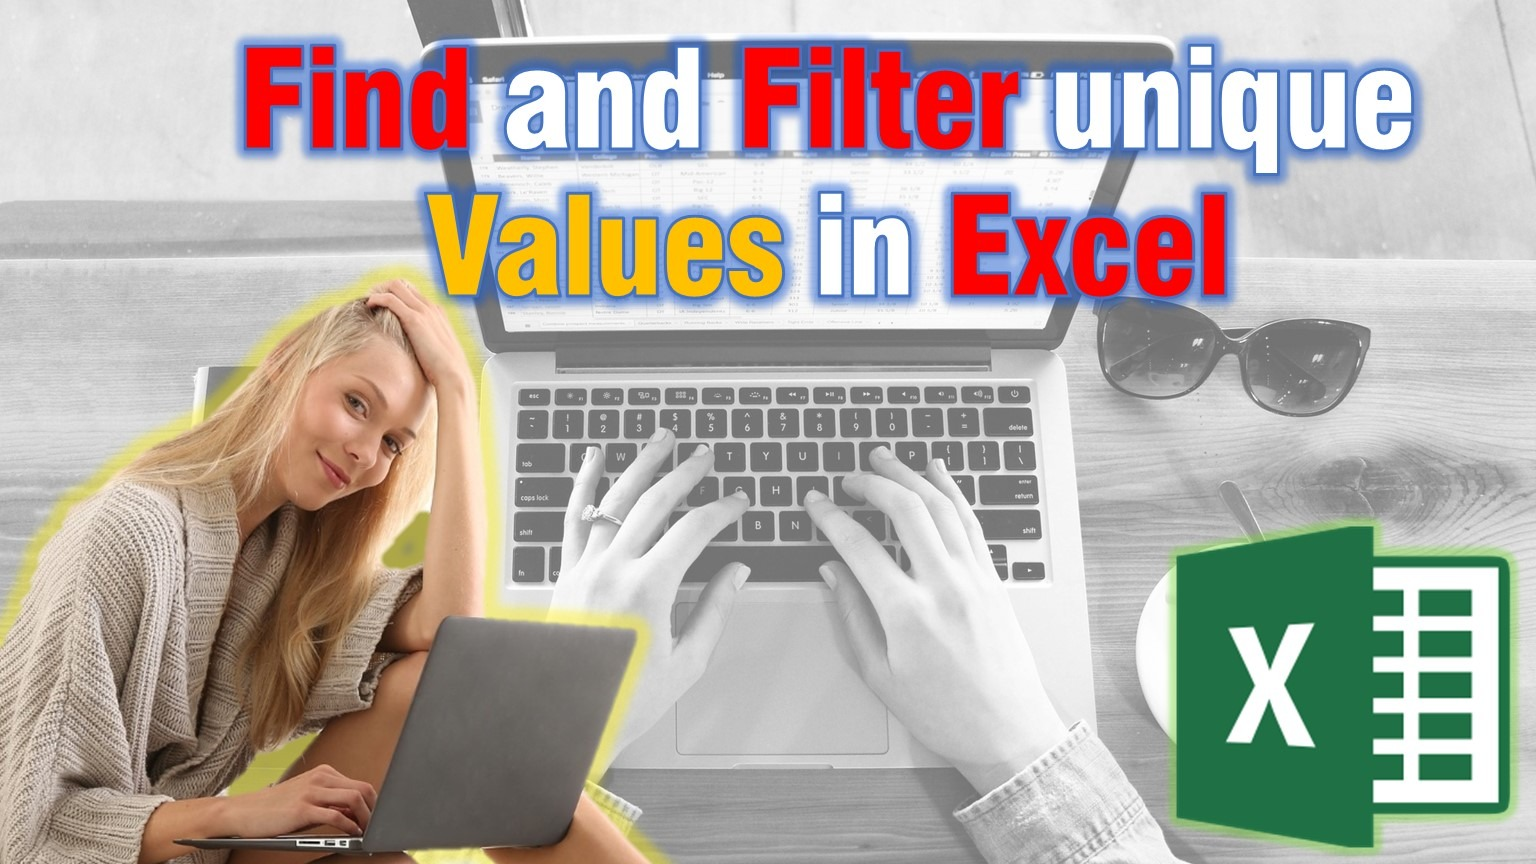 Filter unique values in Excel!